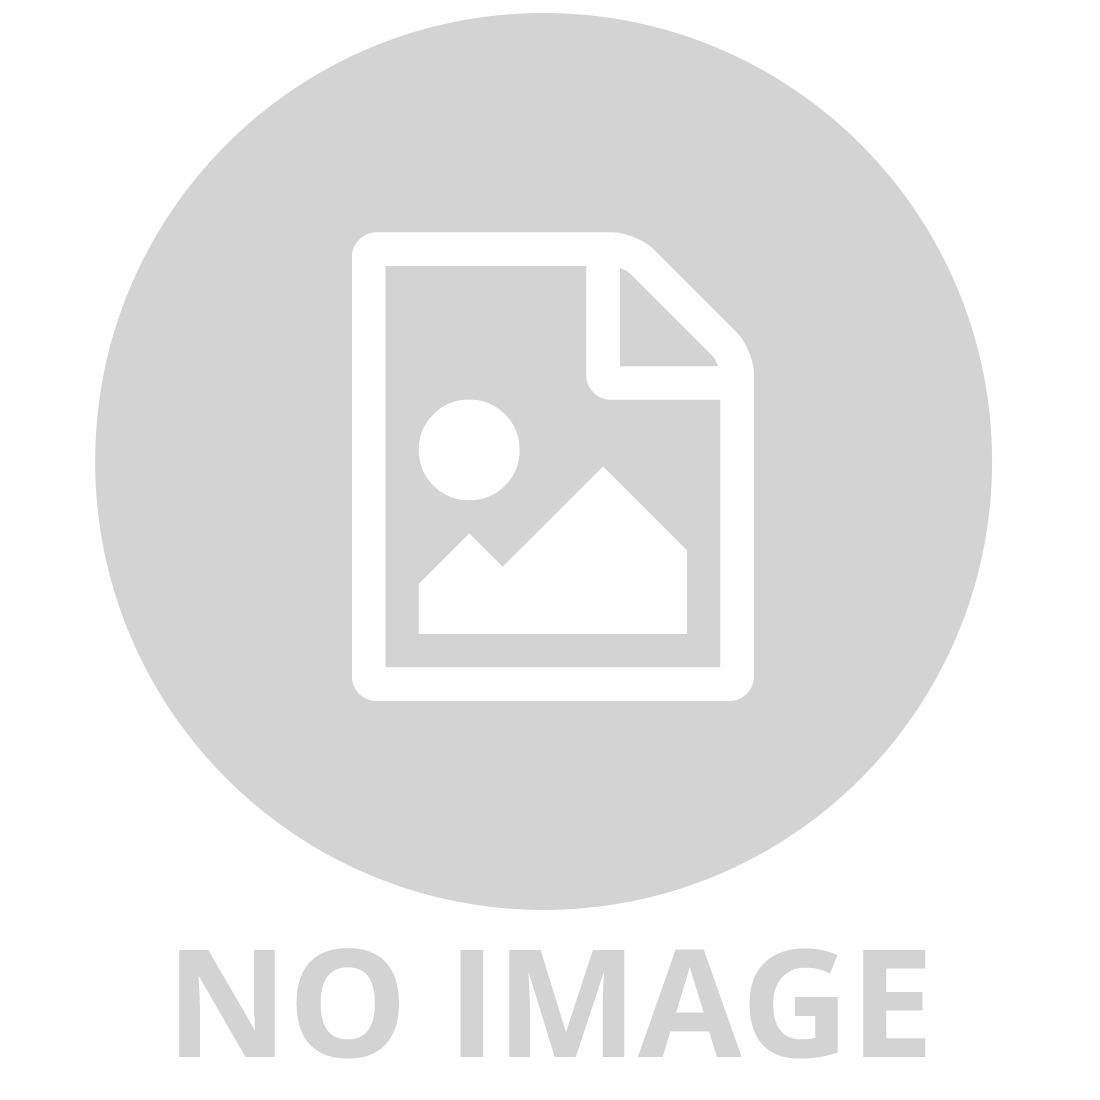 EXR24 910mm Fan EXT Rod Ant/Brass (21mm) Standard